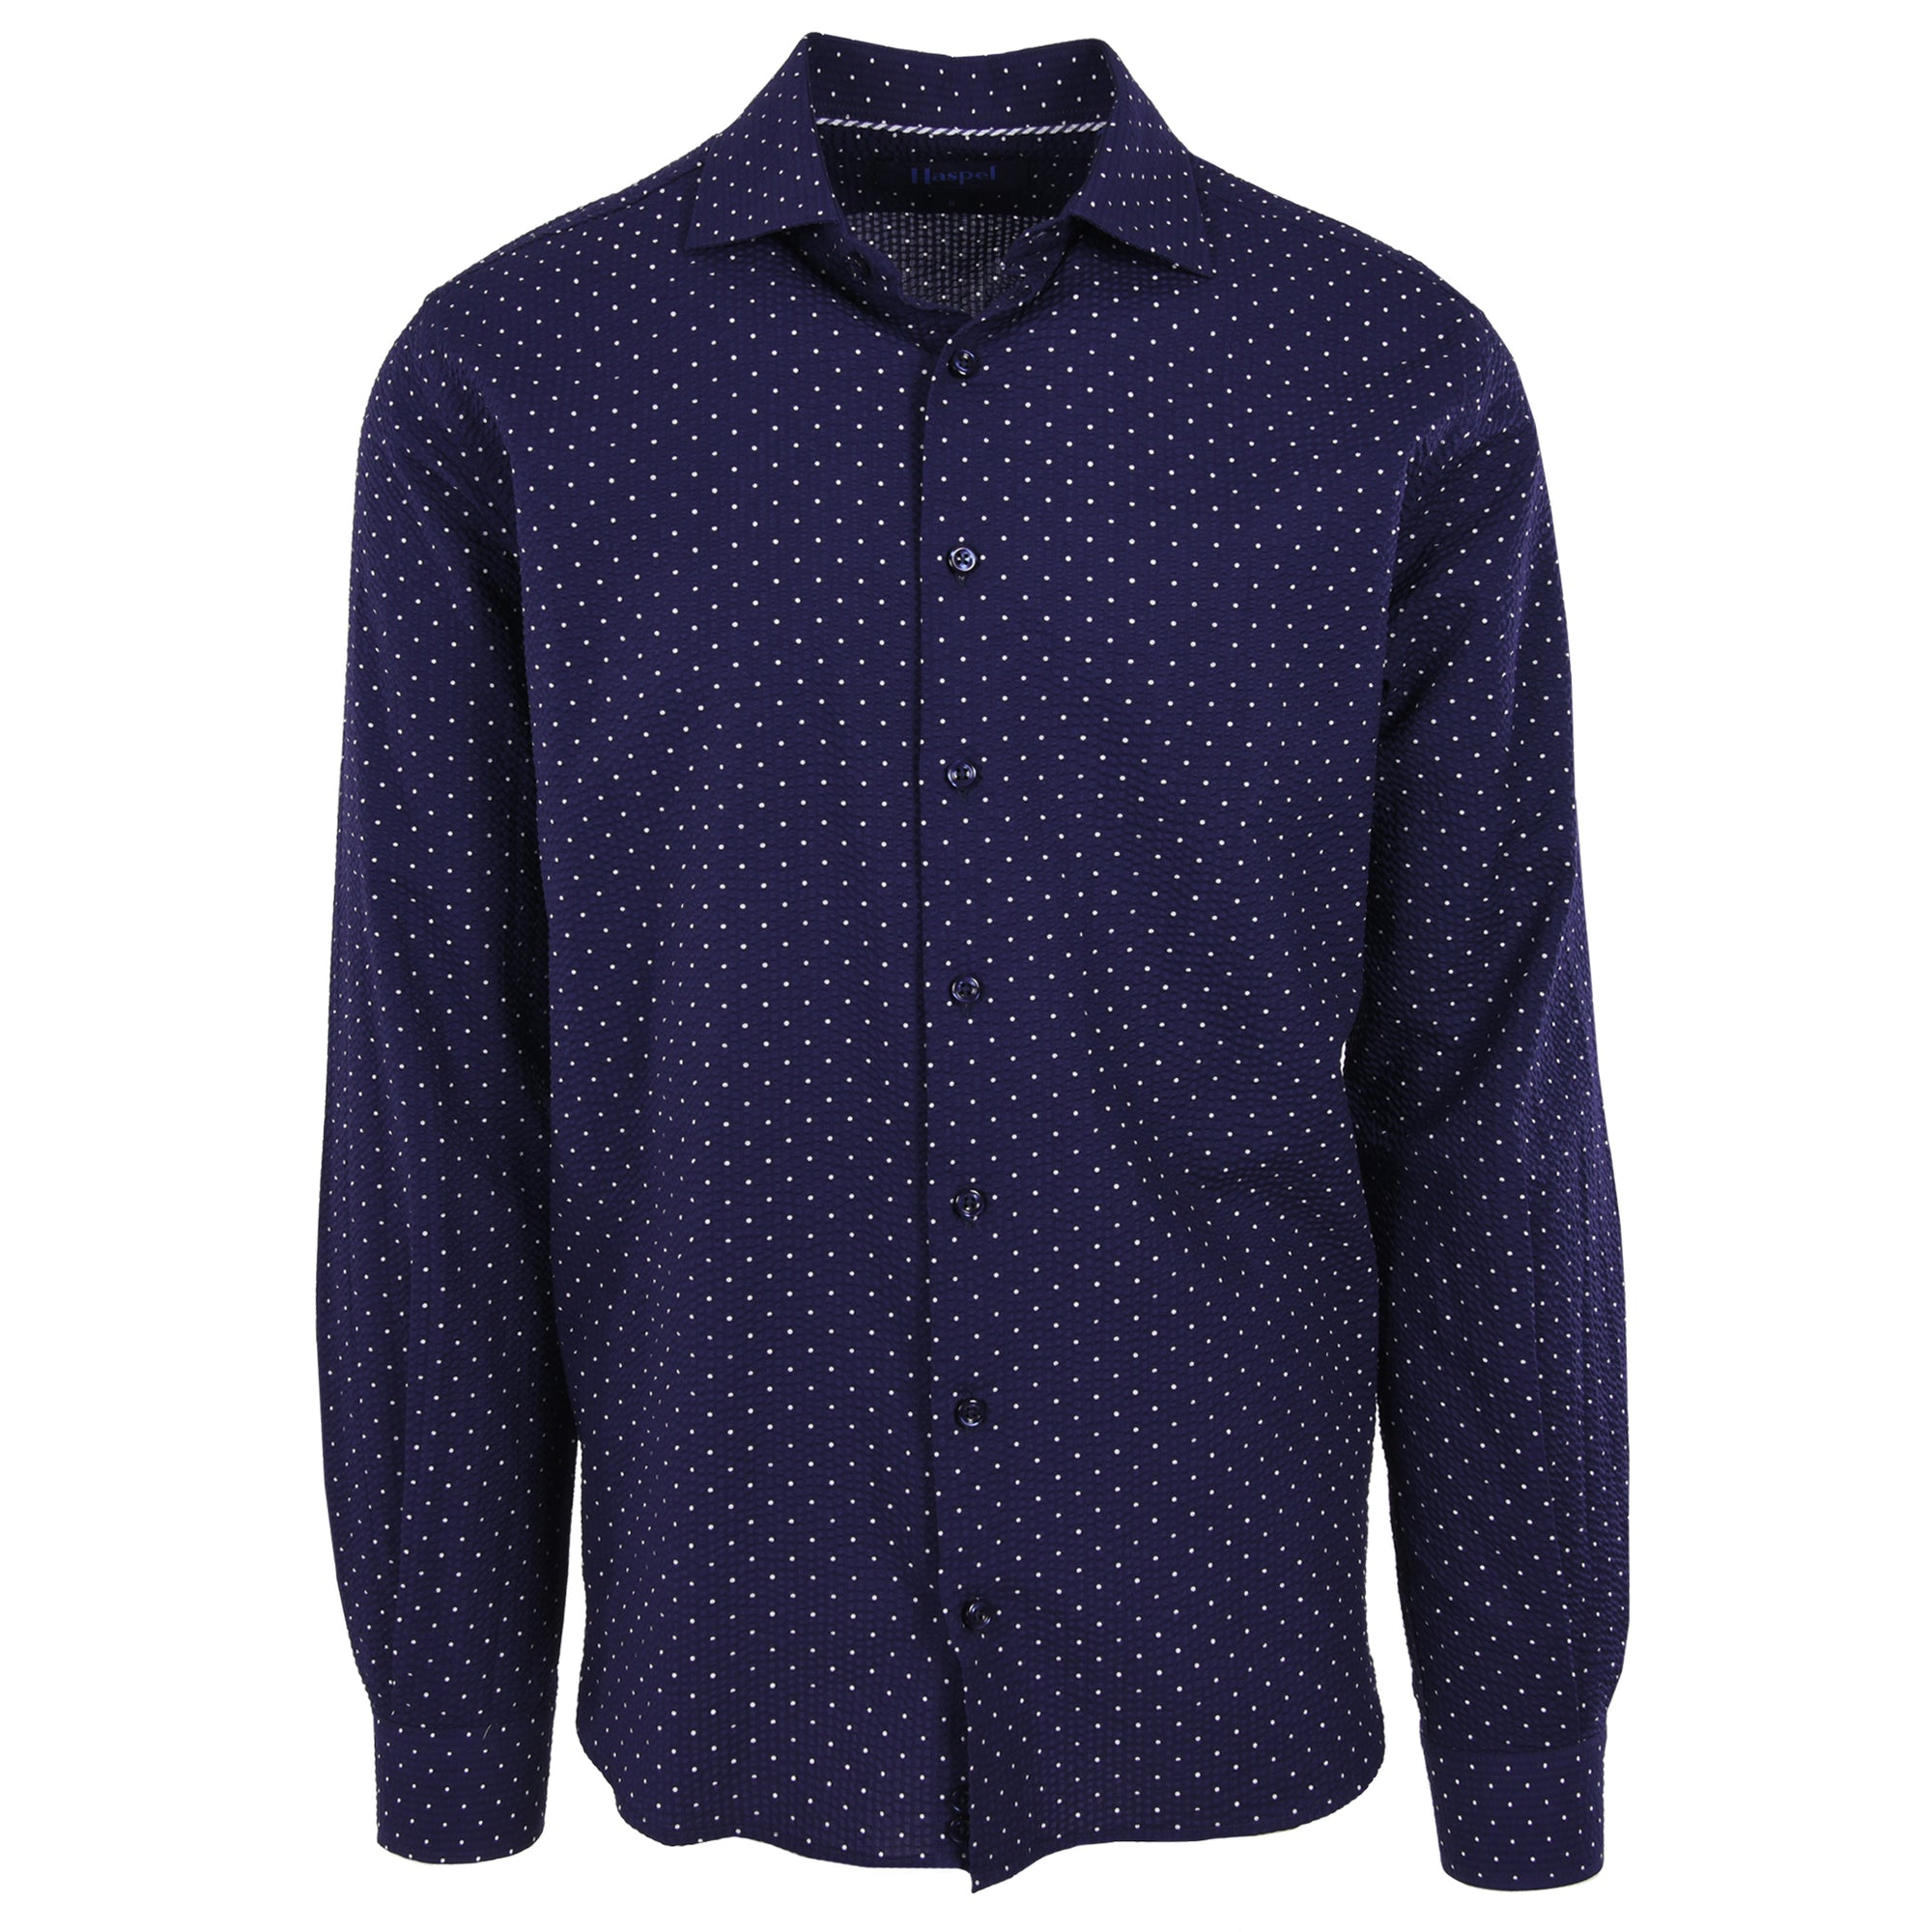 Erato Navy Dot Seersucker